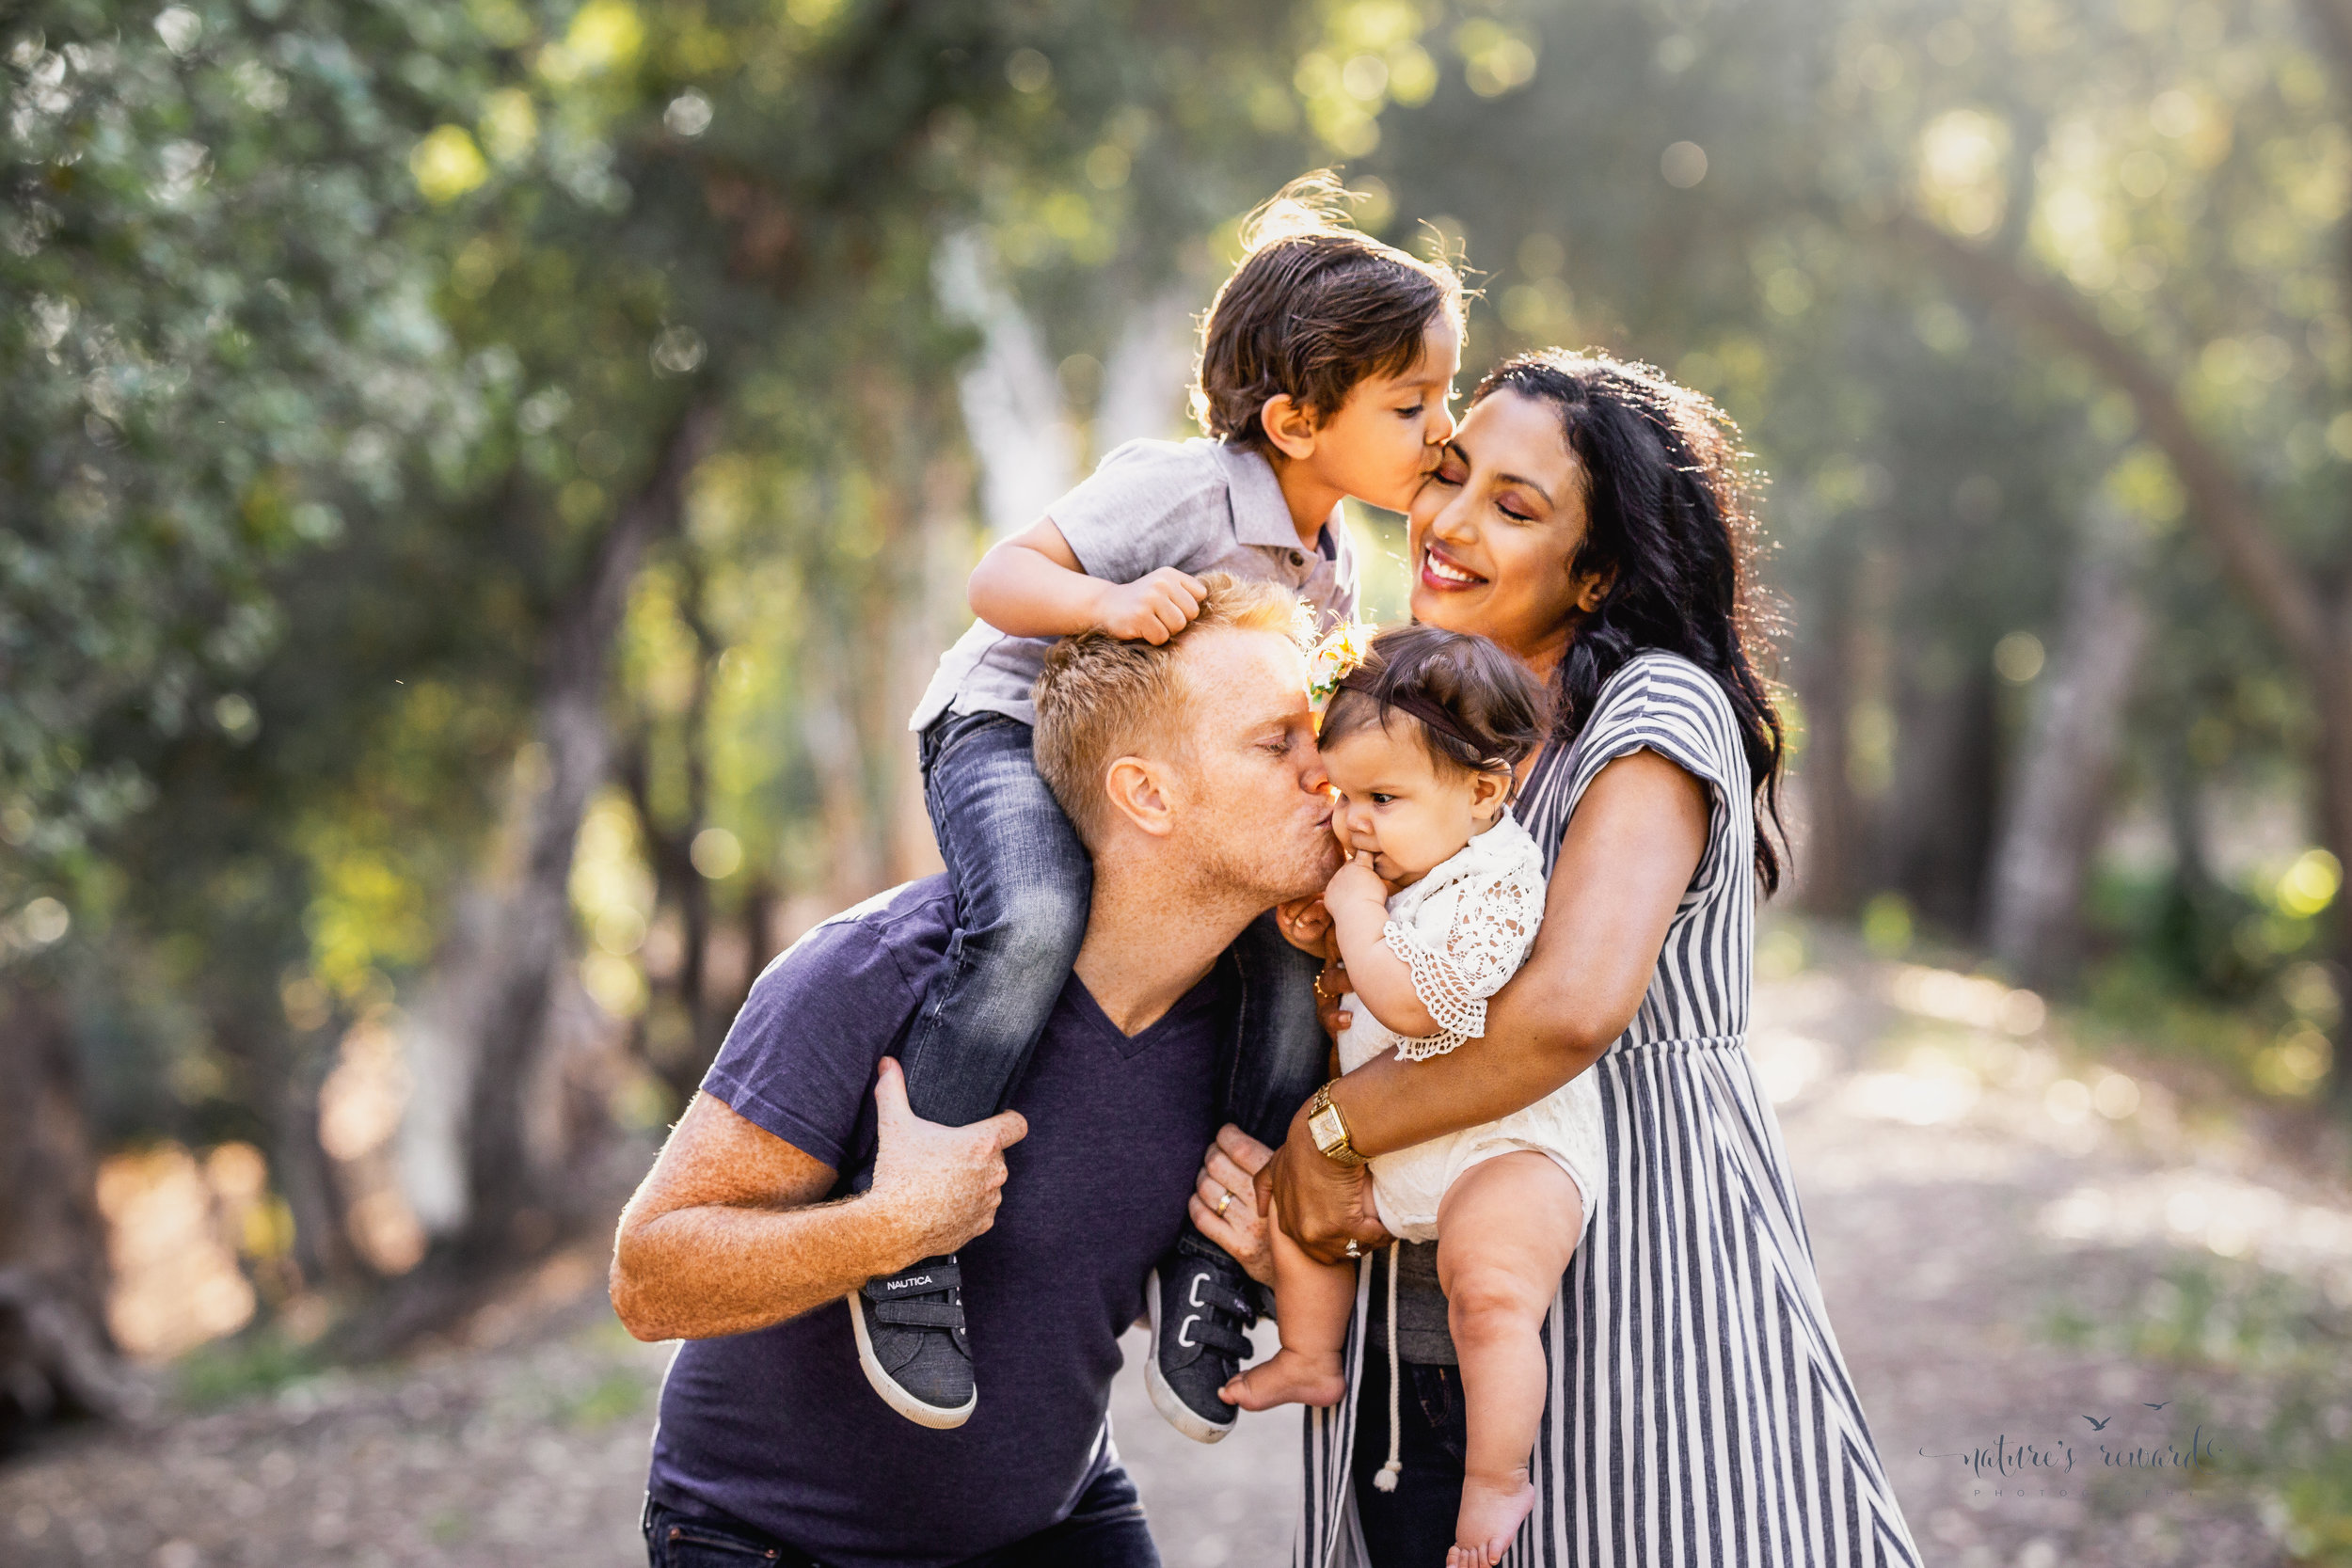 Family portrait on a tree lined dirt path by Nature's Reward Photography